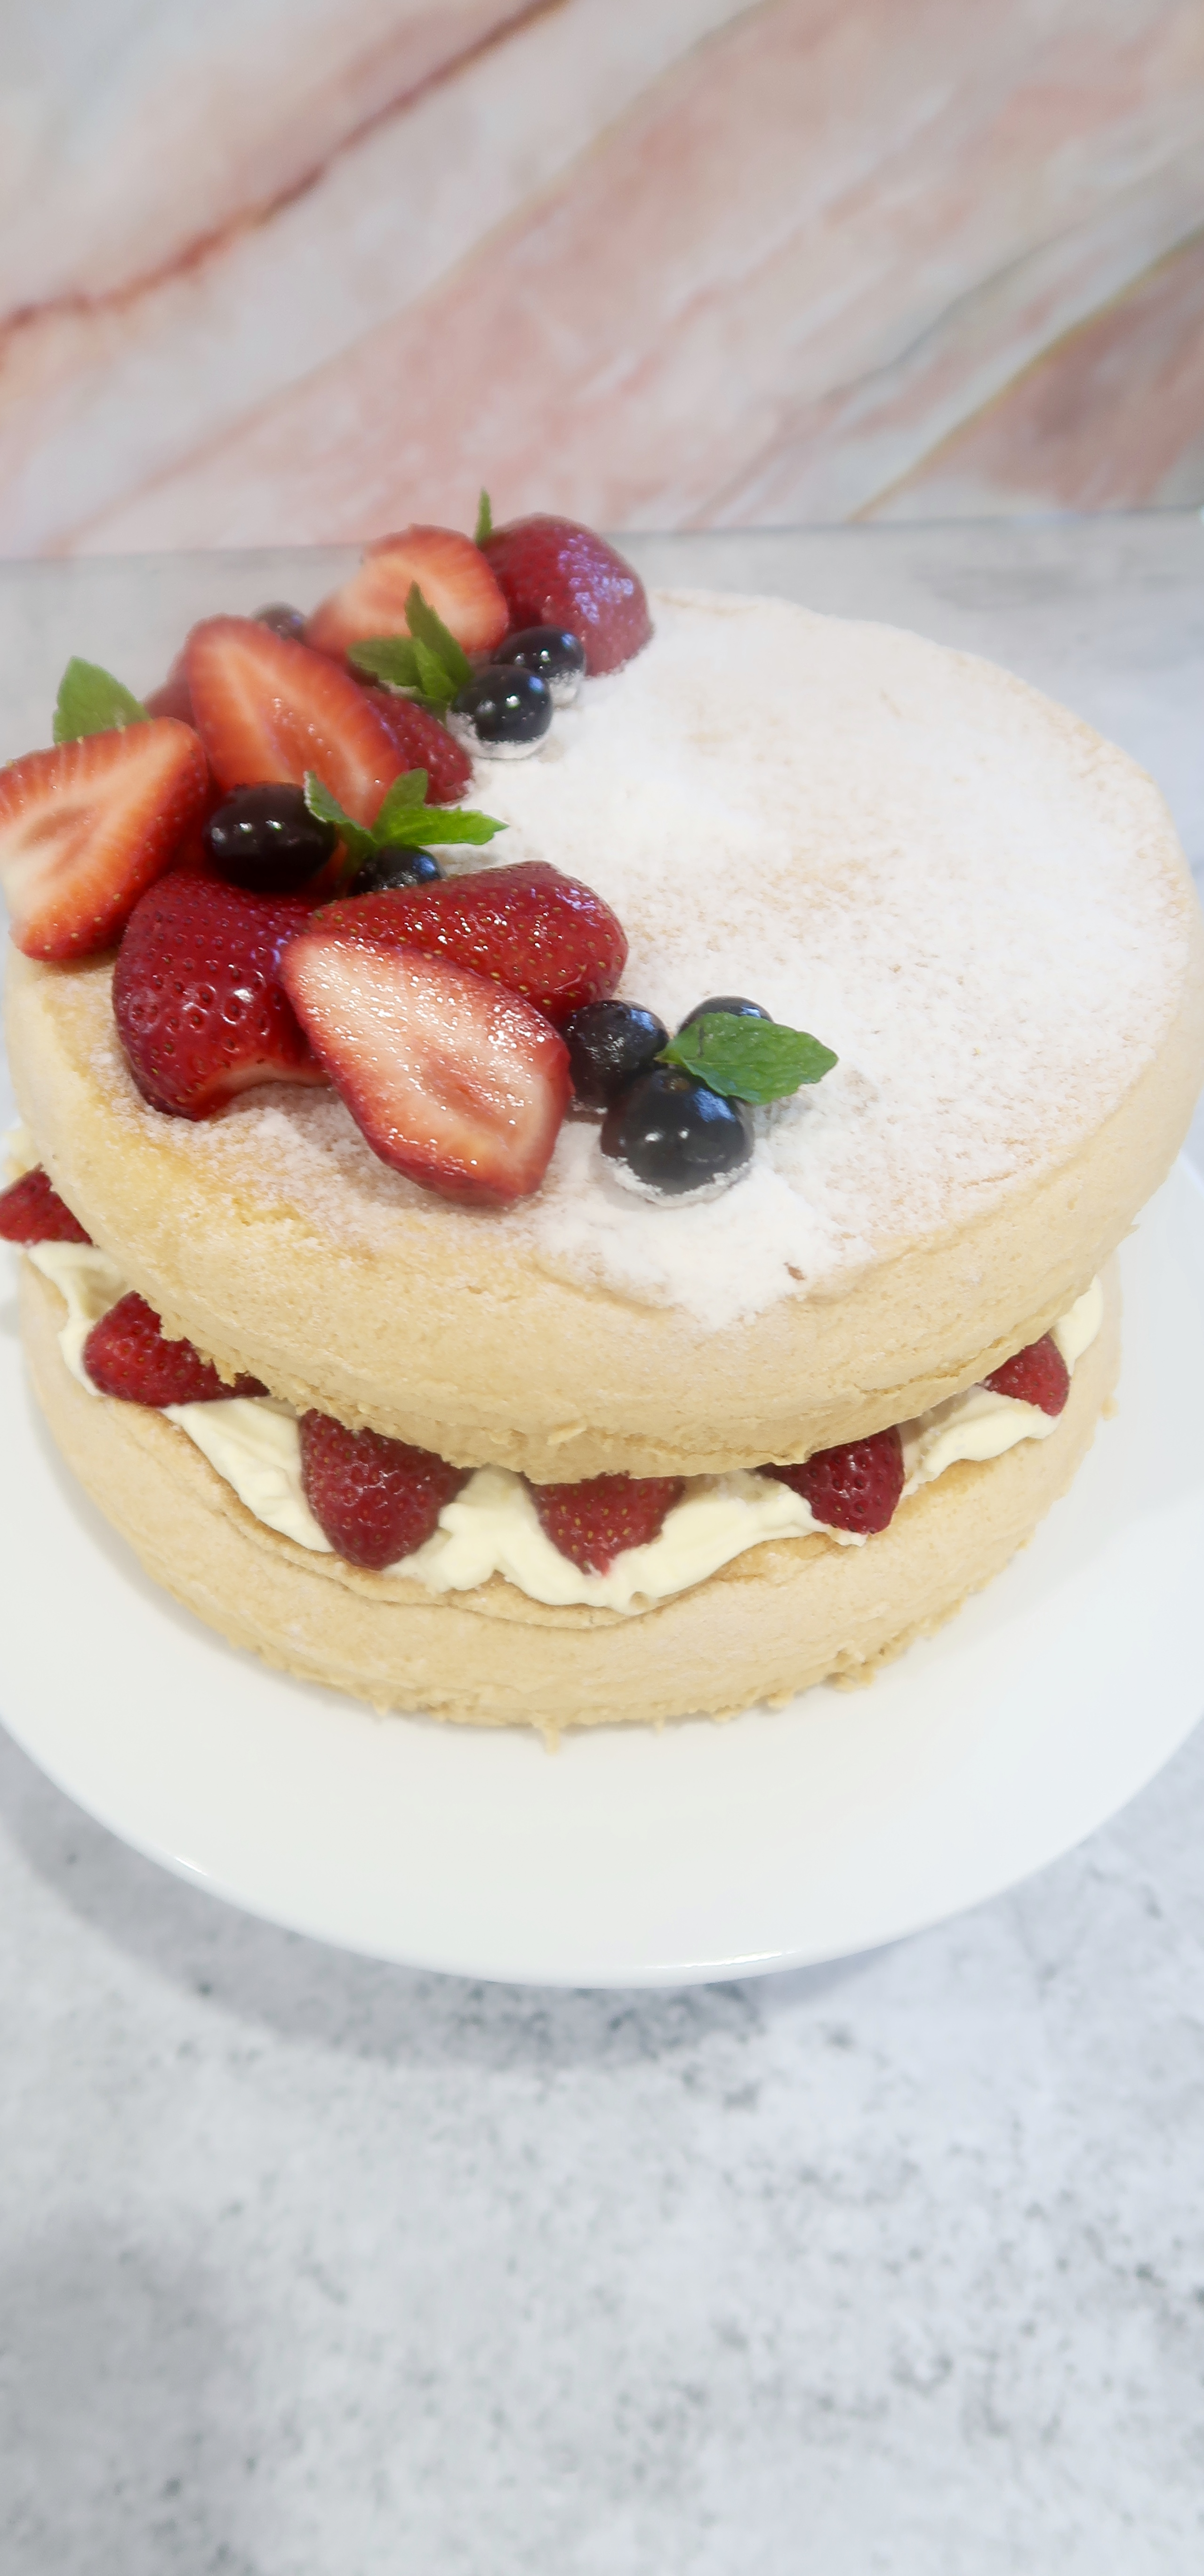 strawberry and cream sponge cake